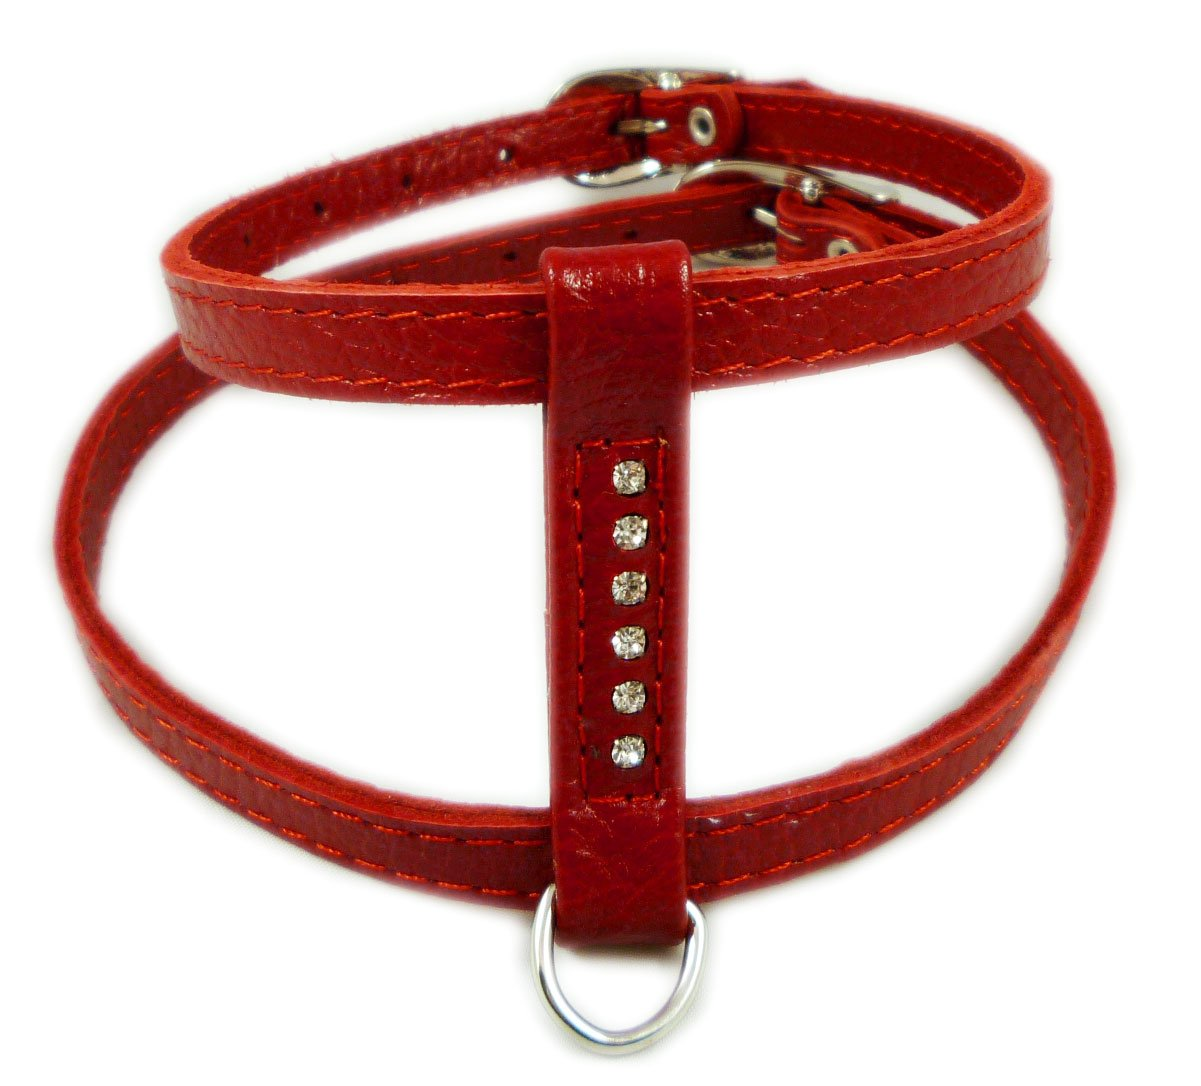 Genuine Leather Dog Harness for Toy Breeds X-small. 10''-13'' Chest Circumference Rhinestones (Red)